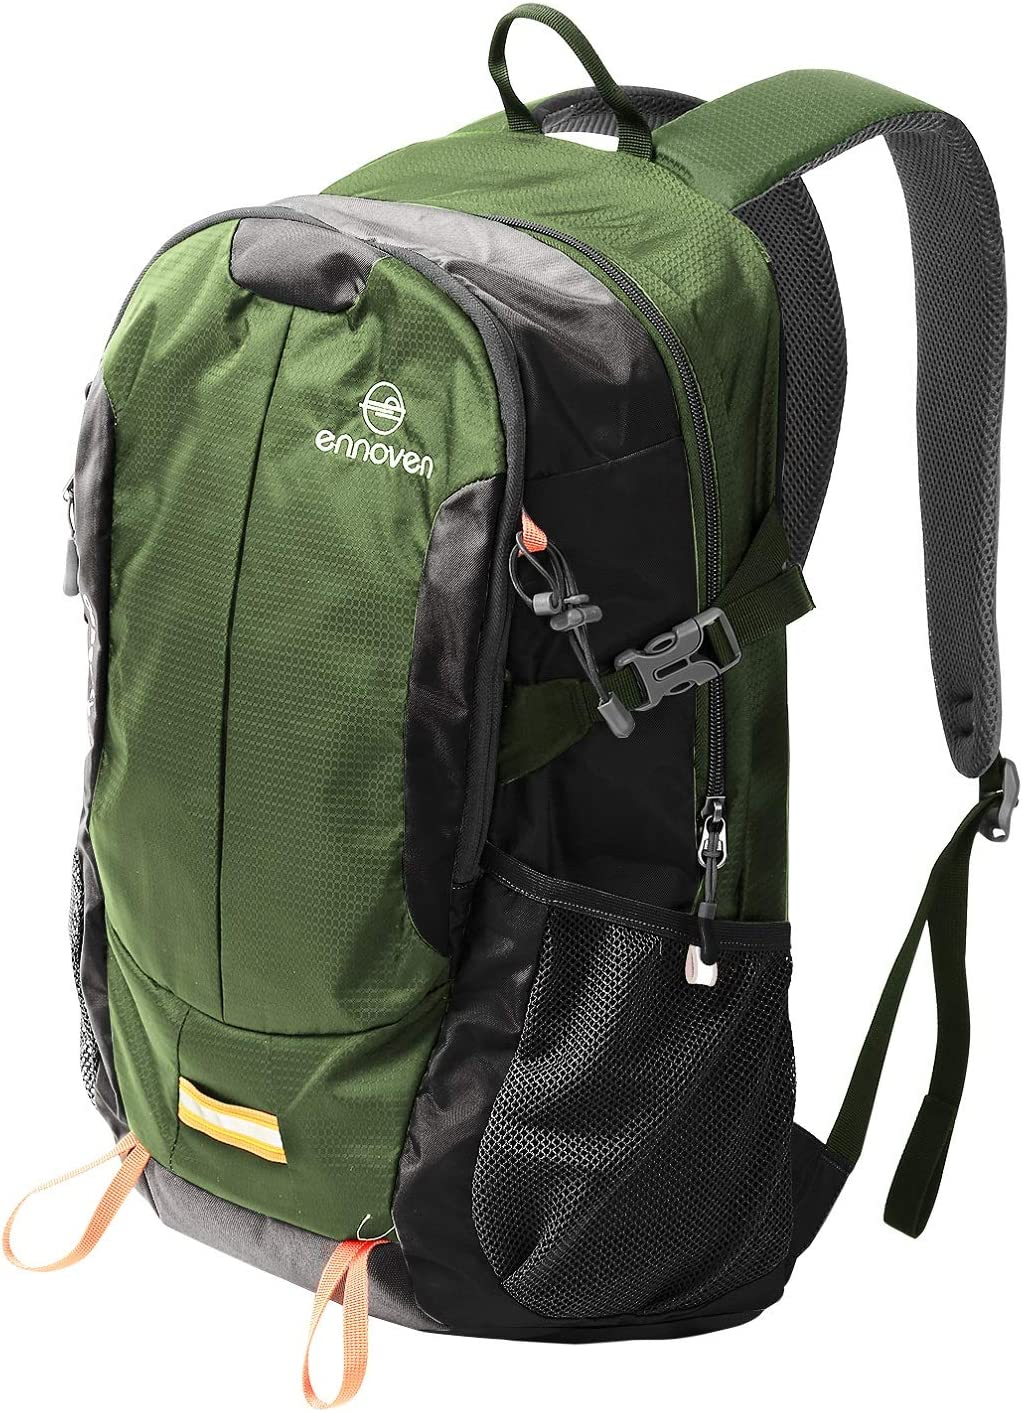 Fashion Ennoven Camping Daypack-Water-Resistant Light back Weight low-pricing hiking